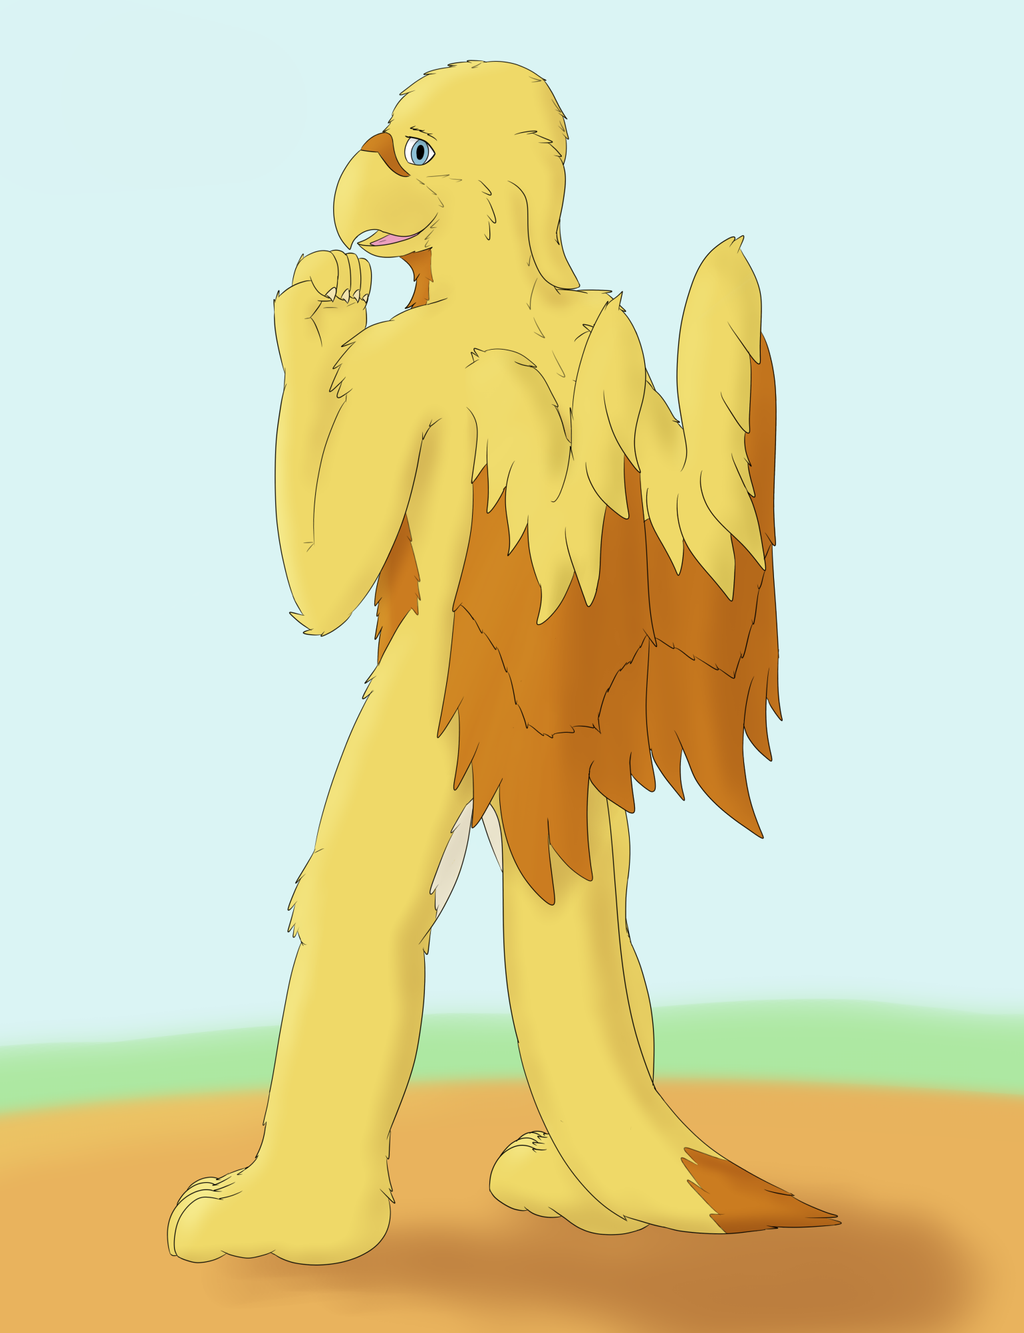 excited Gryph by dalnariarna